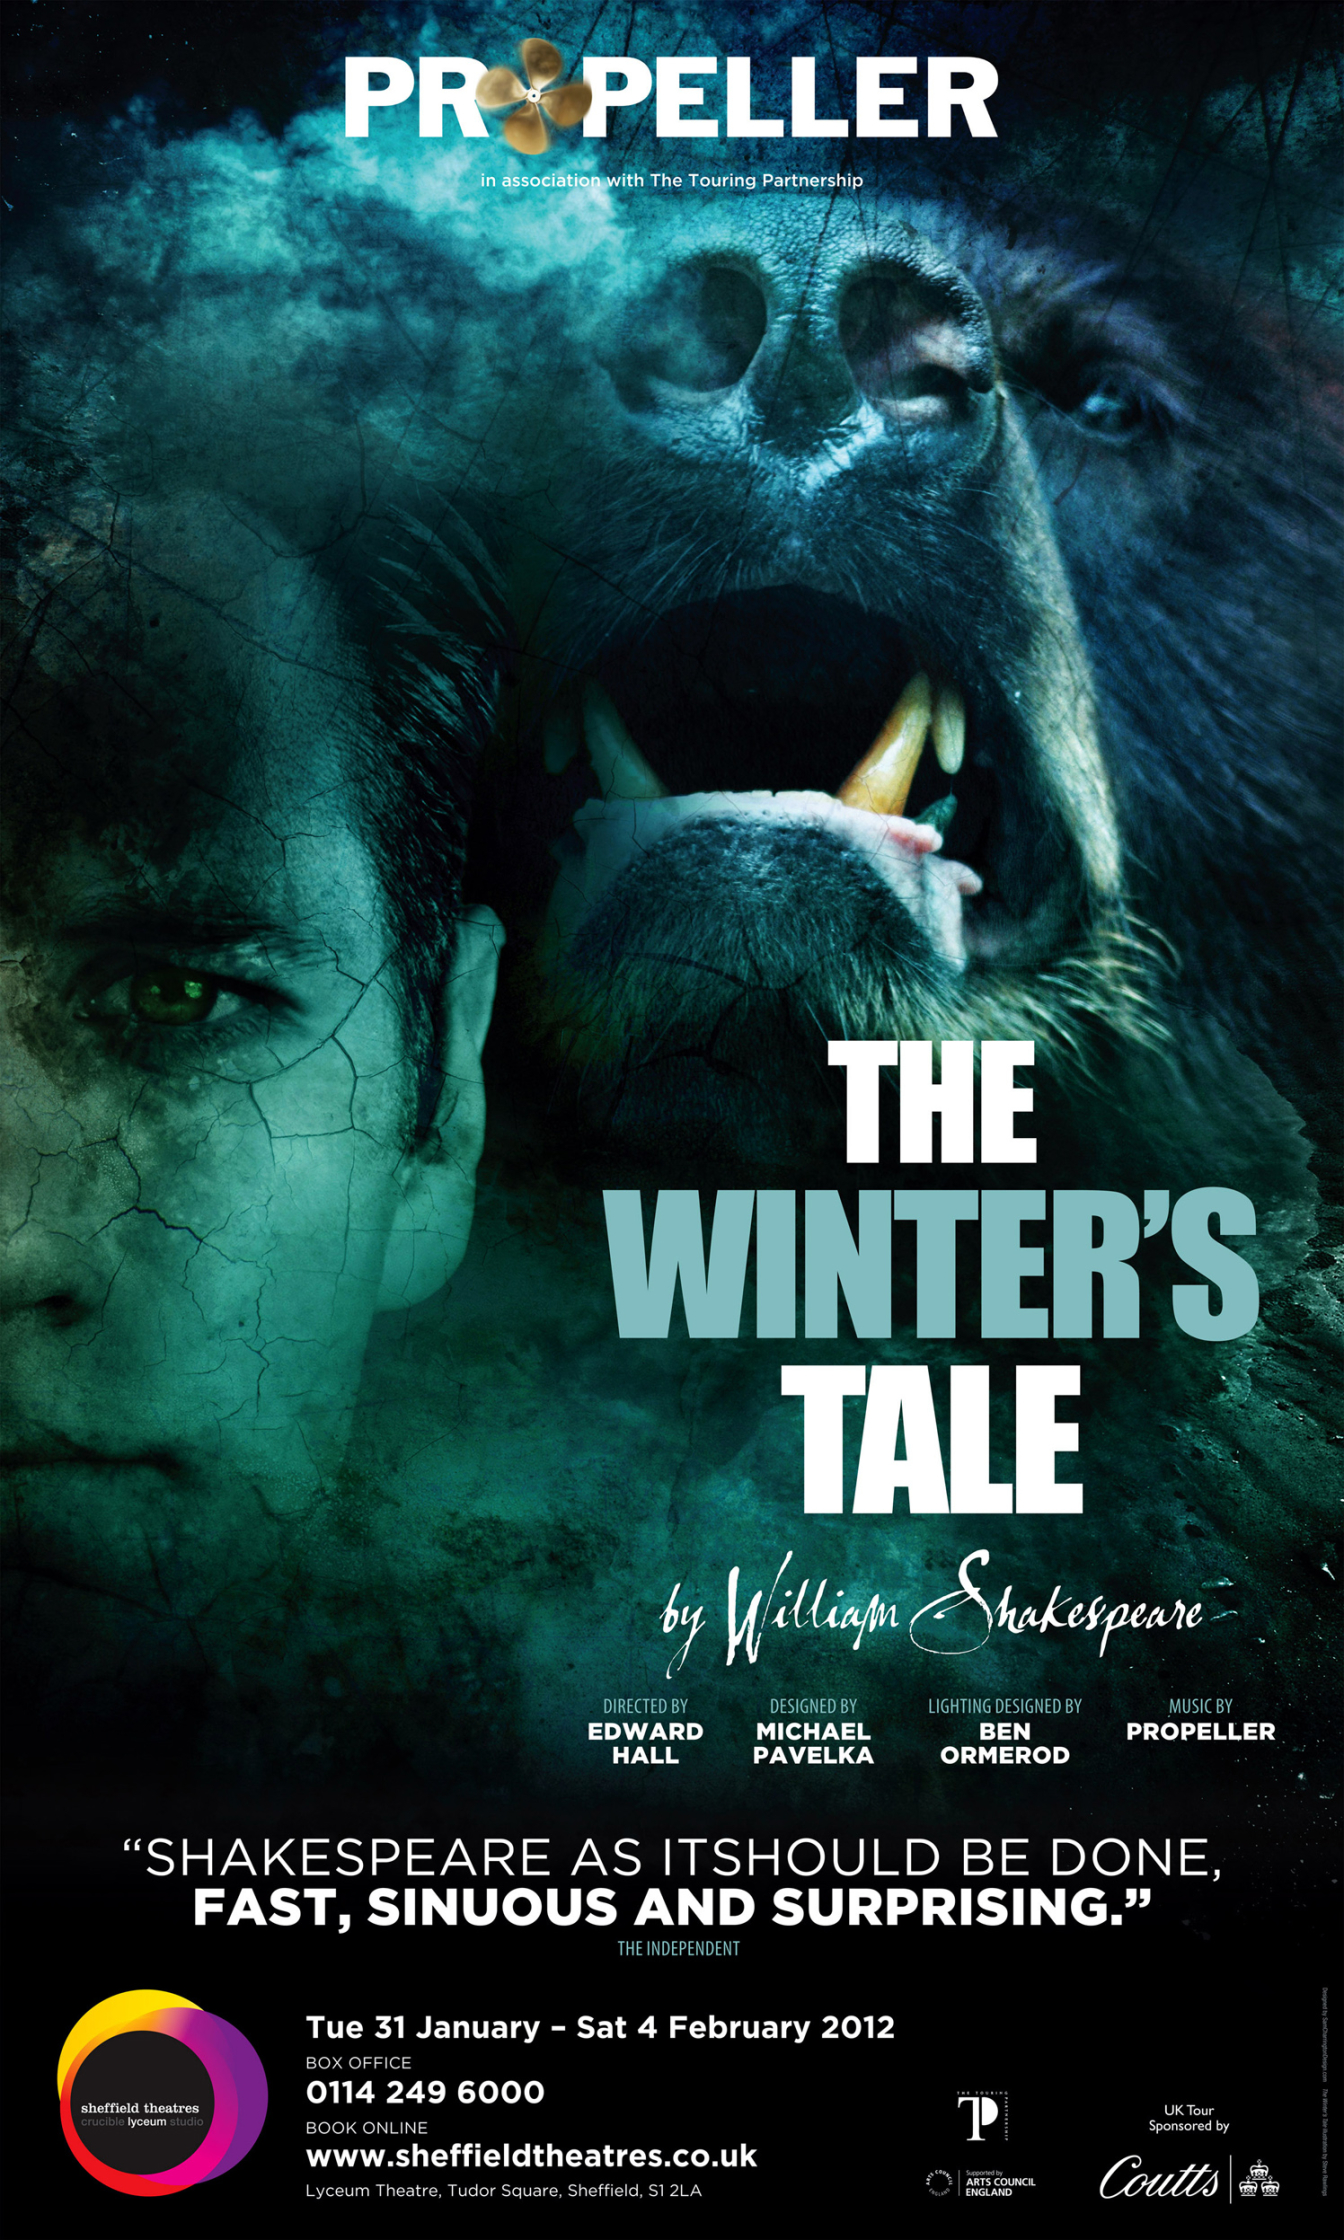 The Winters Tale by William Shakespeare / Propeller Theatre Company